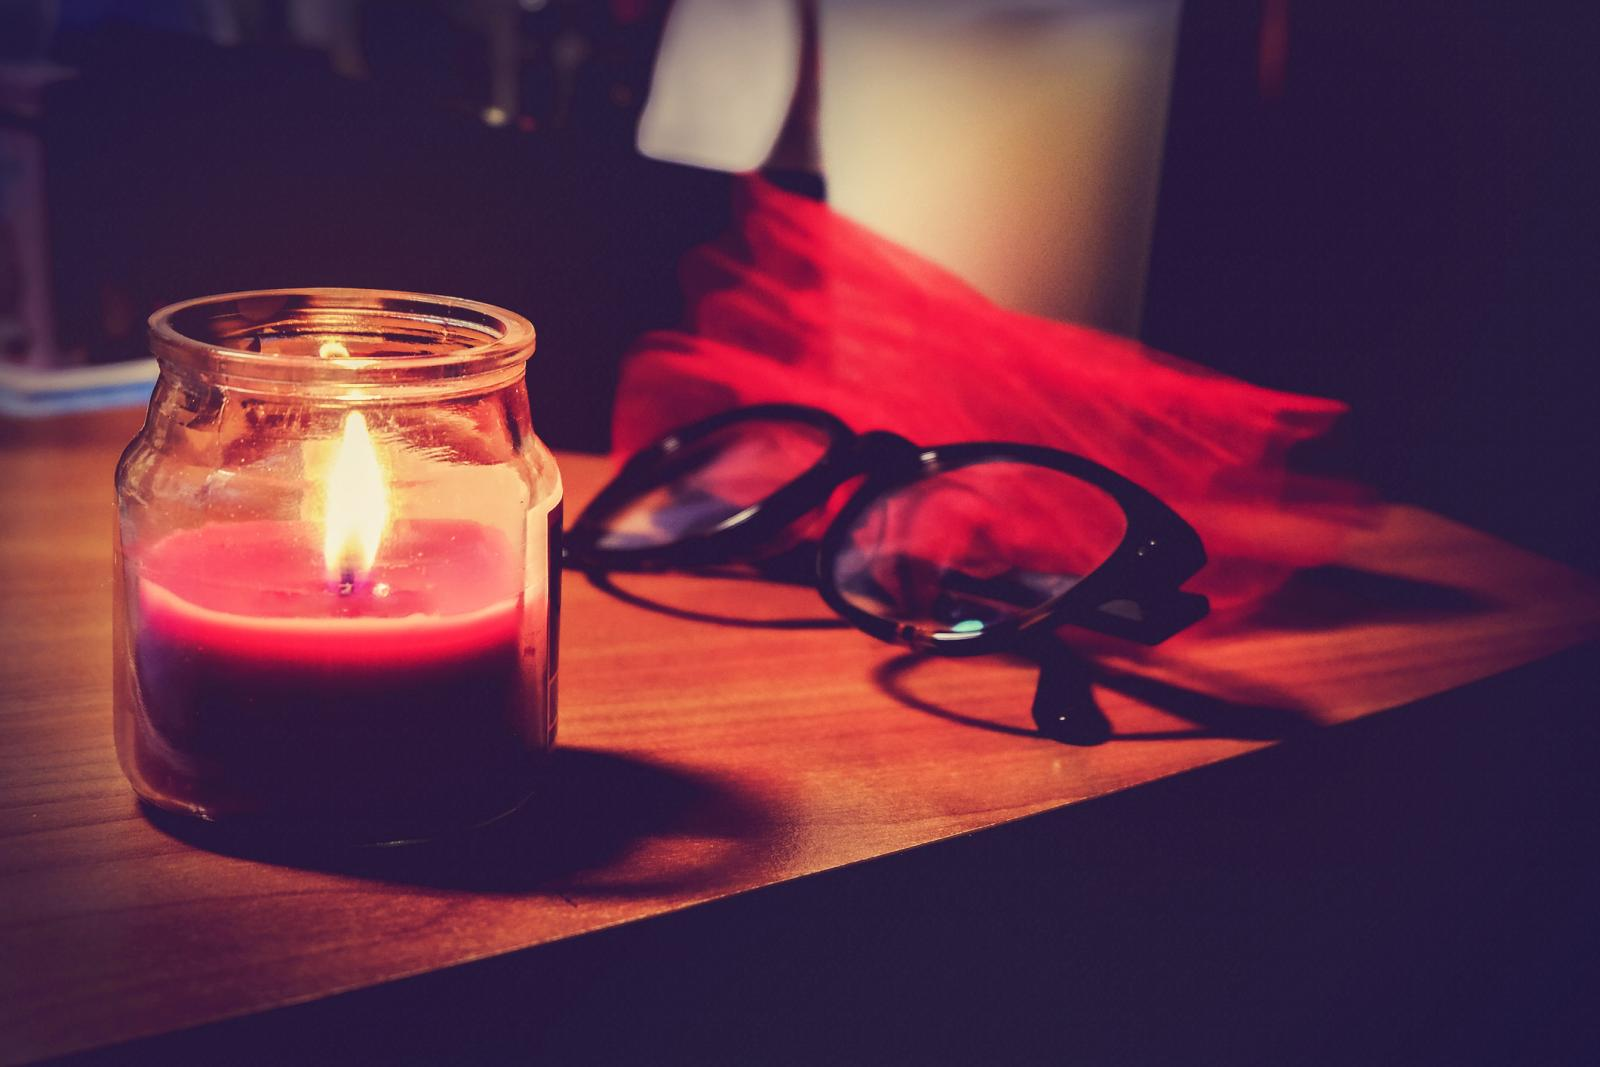 Lit Candle In Jar And Eyeglasses On Table